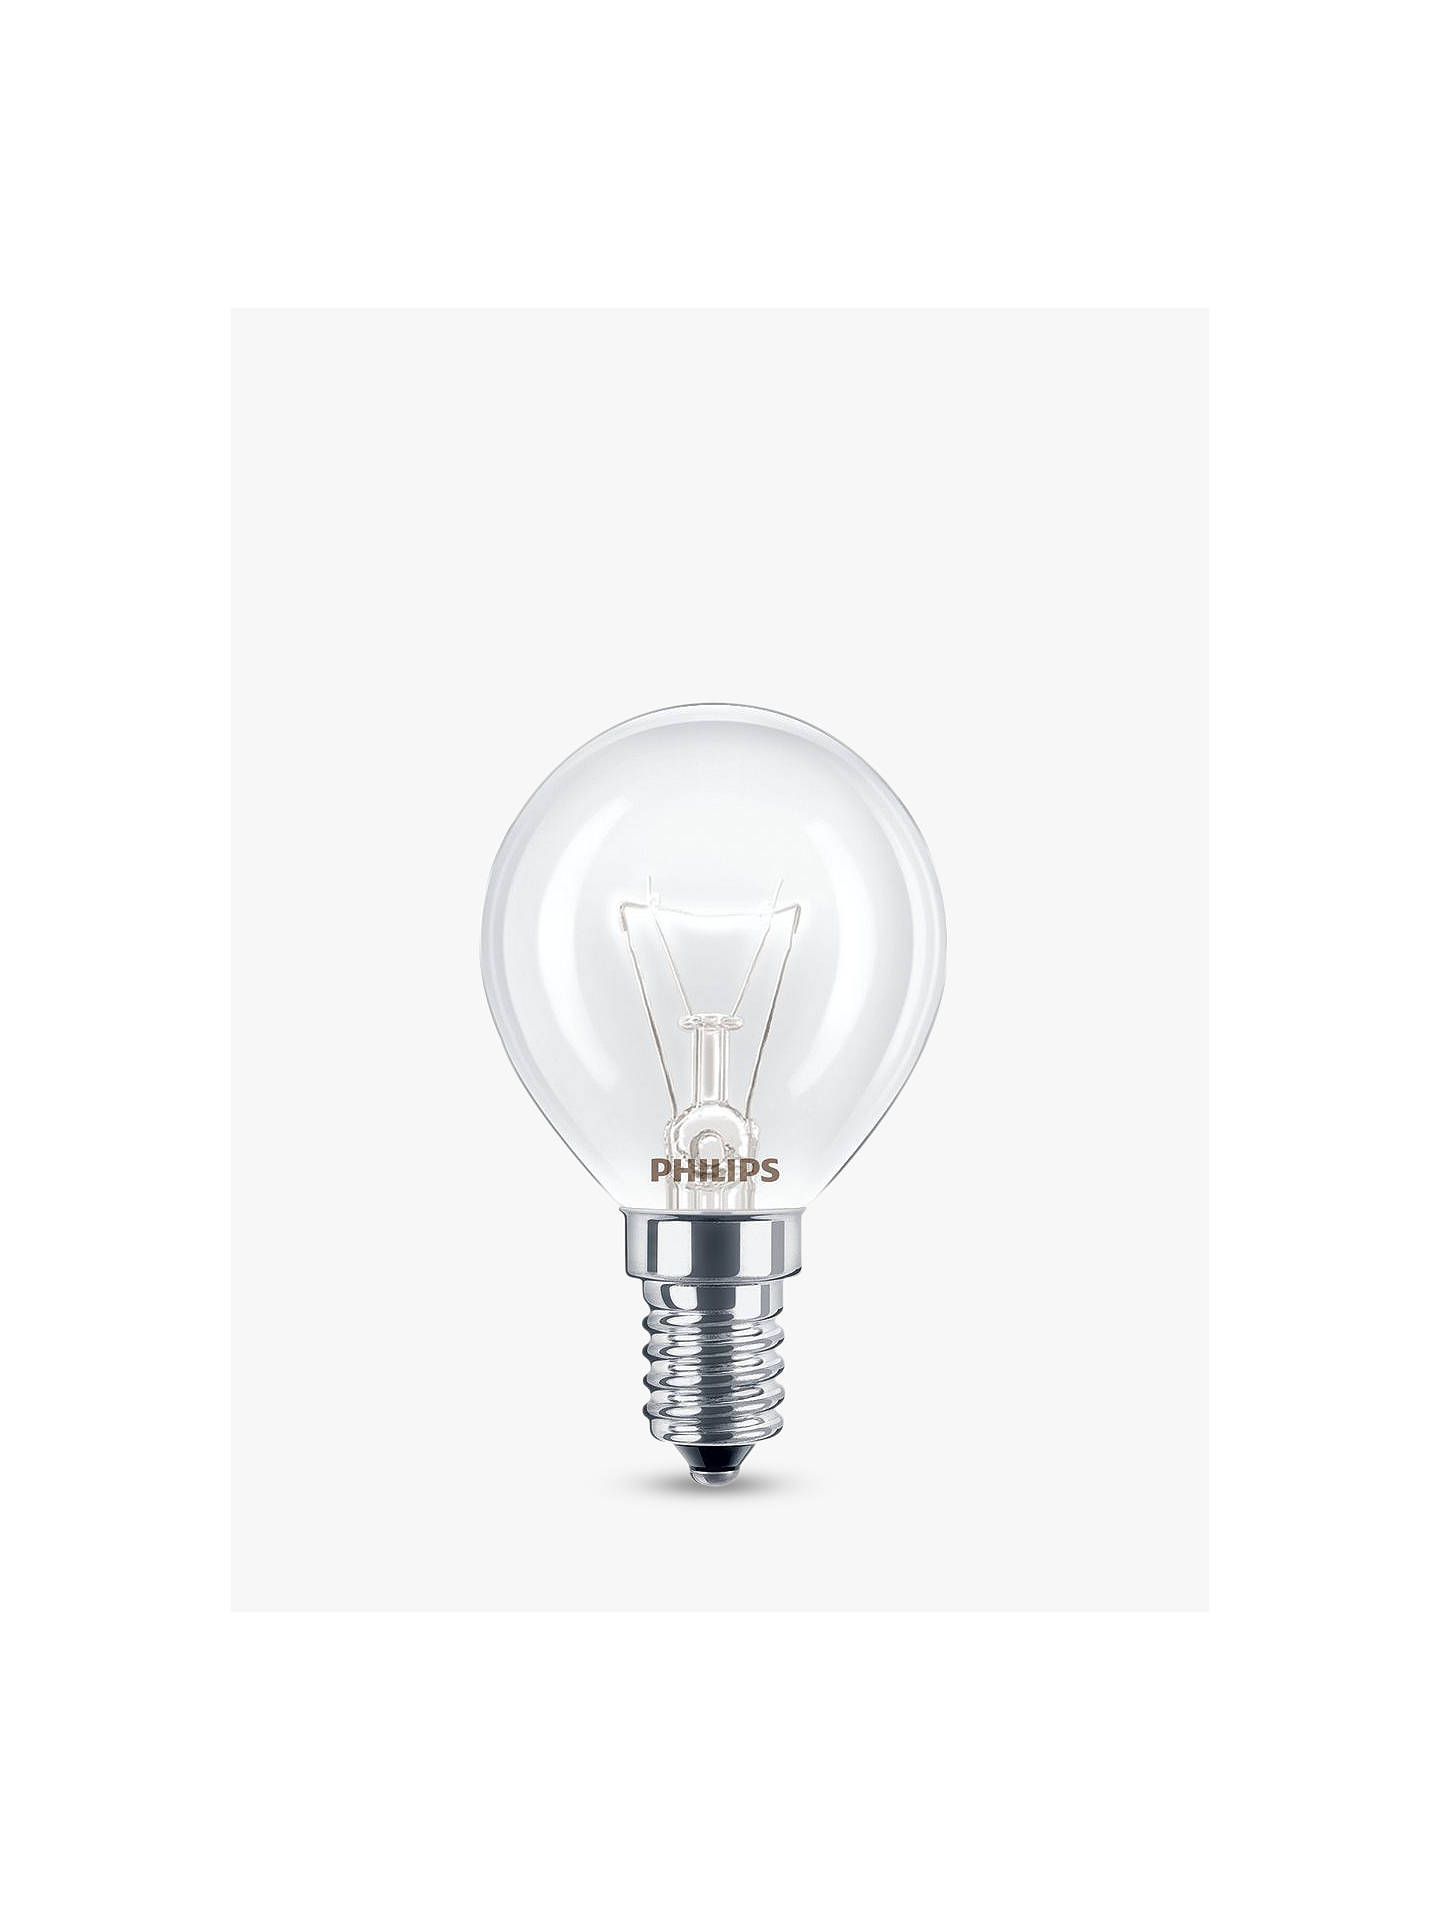 BuyPhilips 40W SES Oven Lamp Online at johnlewis.com